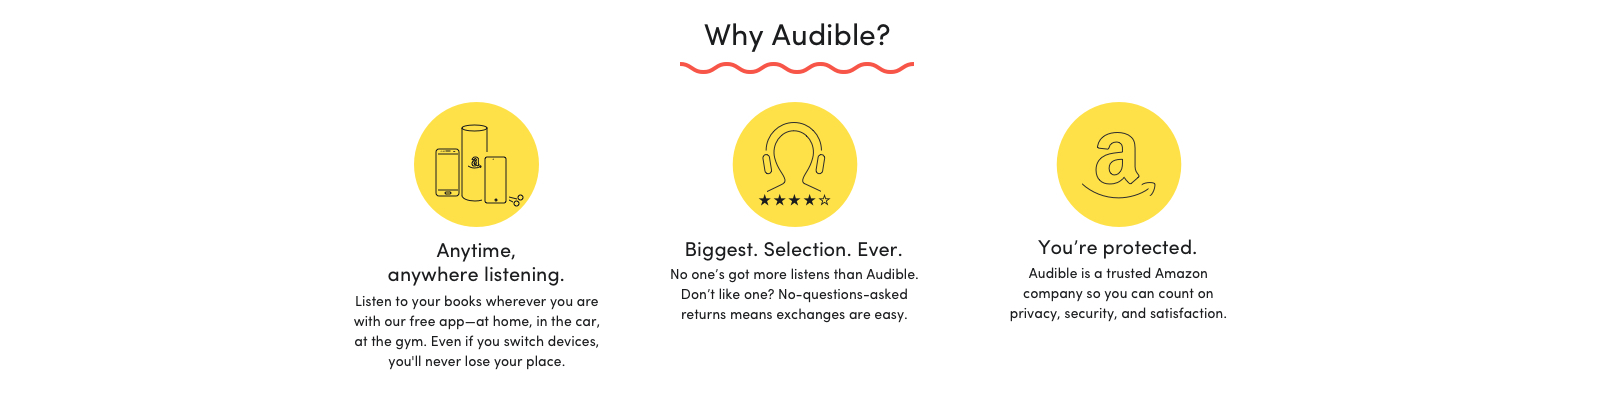 Perks of subscribing to Audible